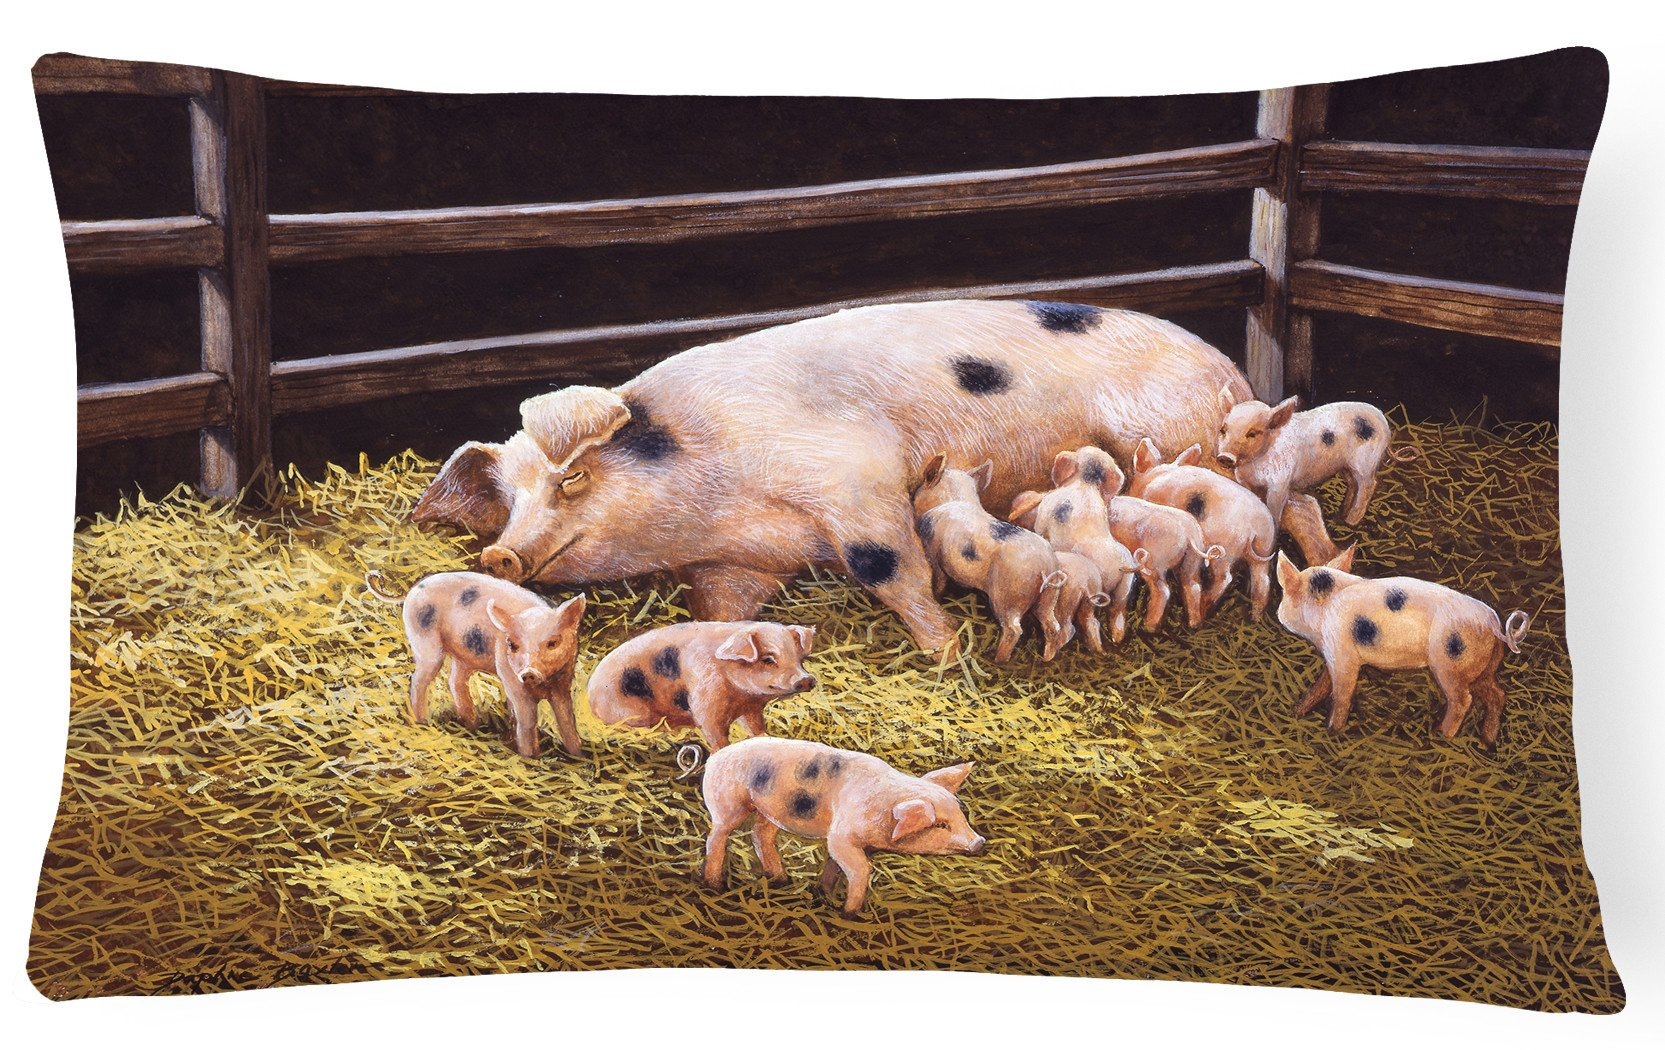 Pigs Piglets at Dinner Time Fabric Decorative Pillow BDBA0296PW1216 by Caroline's Treasures